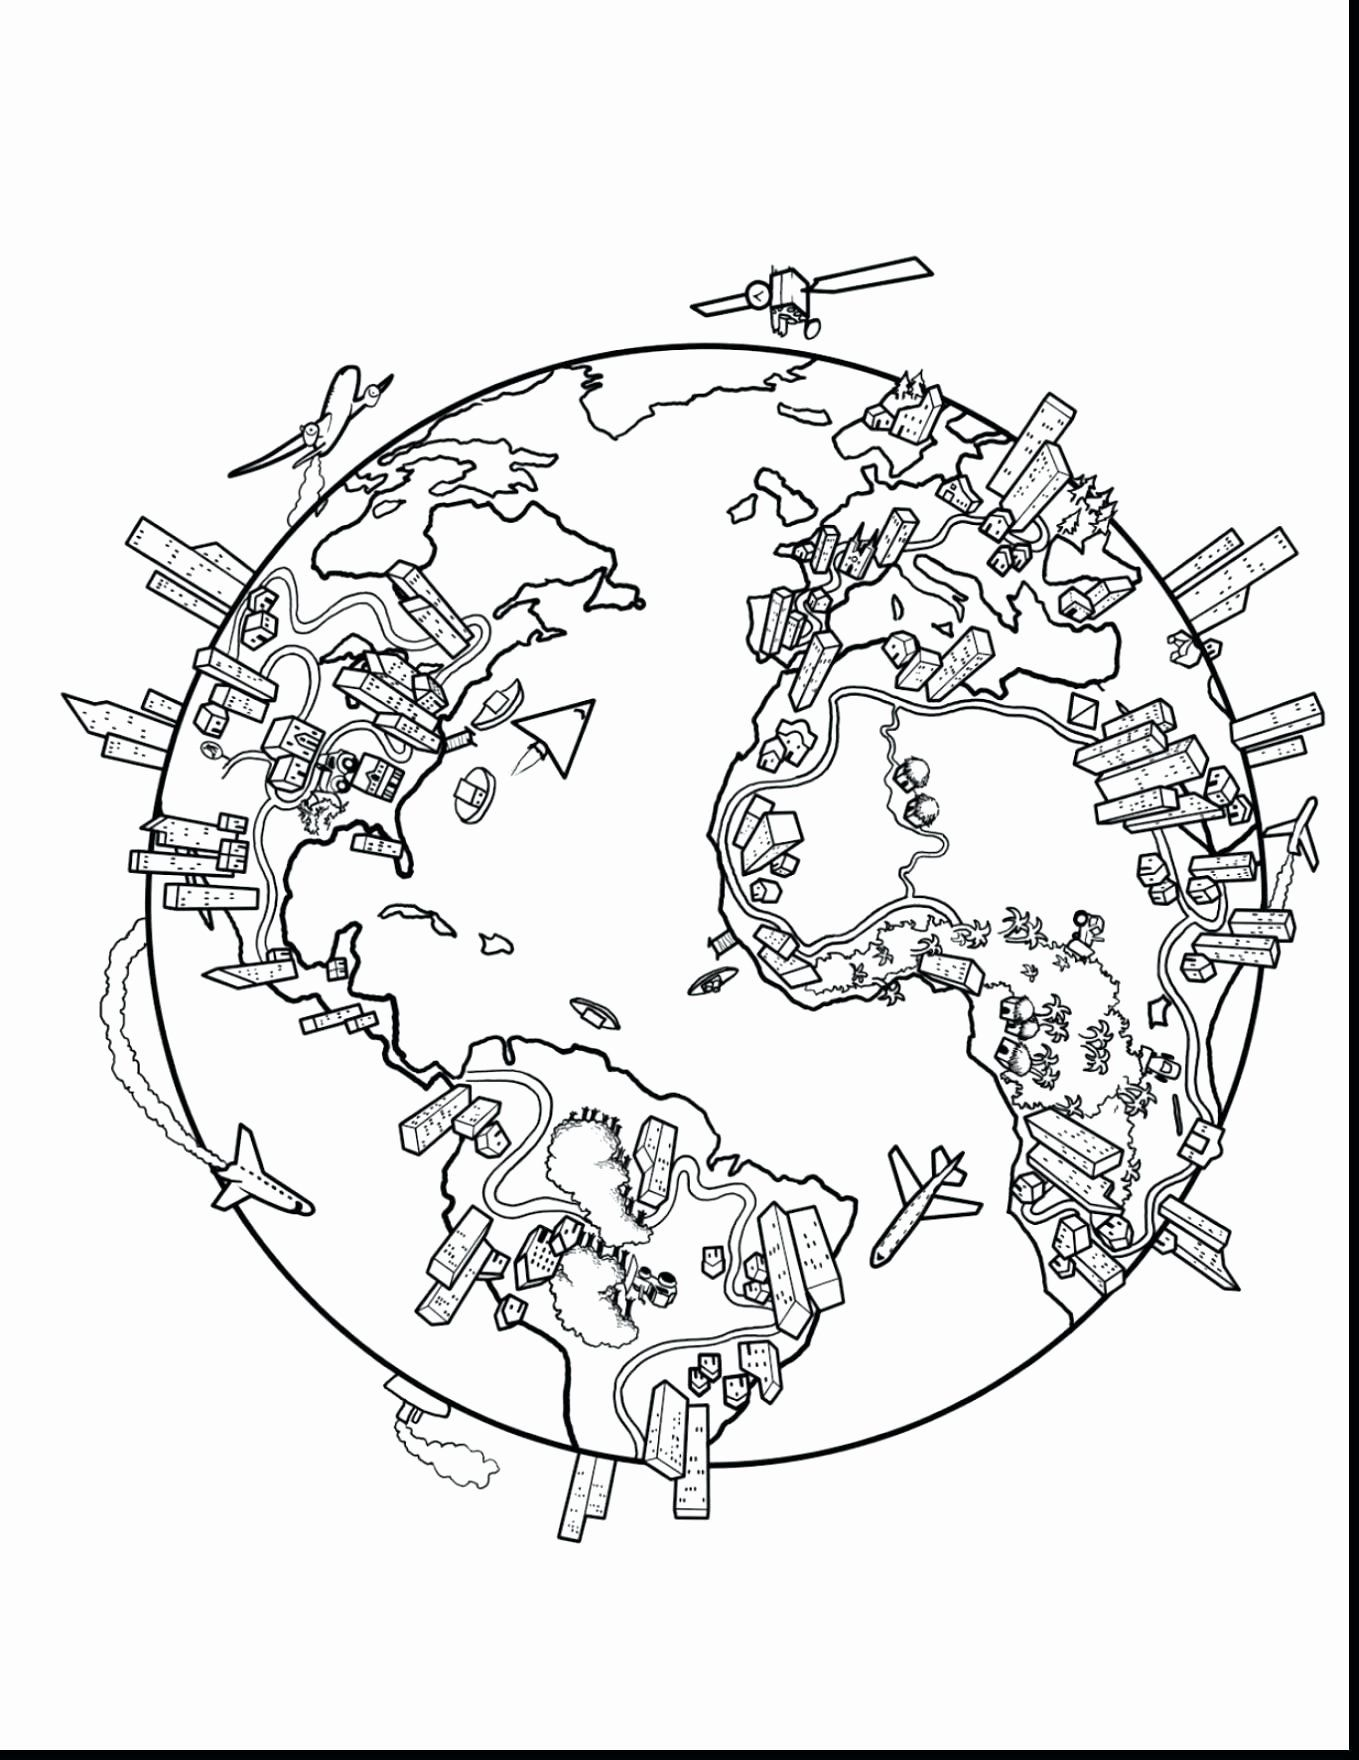 Paraguay Flag Coloring Page Fresh Europe Map Coloring Sheet Micronsheet In 2020 World Map Coloring Page Free Printable World Map World Map Printable